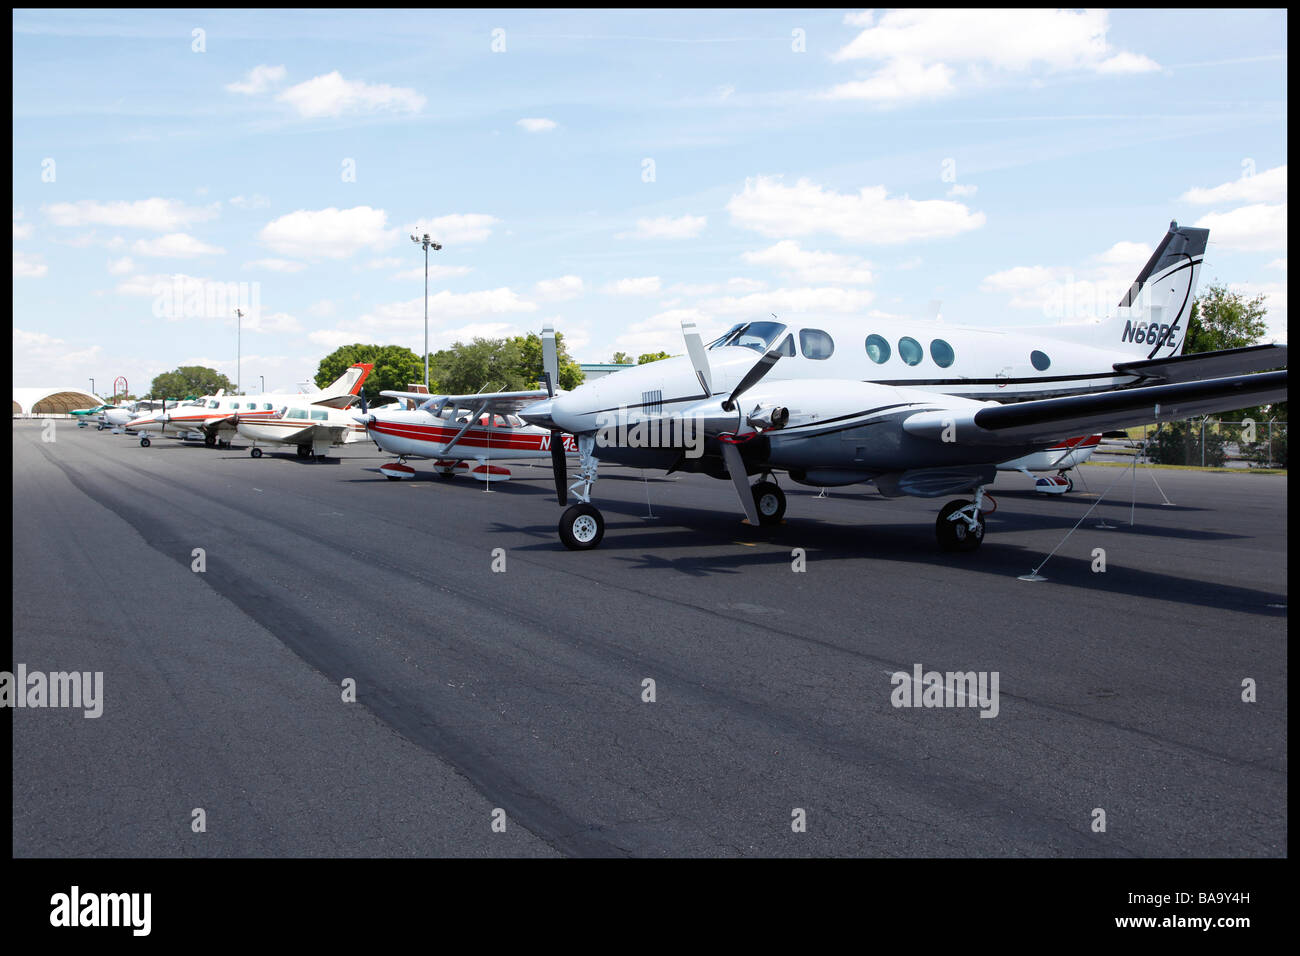 Planes secured on a airstrip in Orlando - Stock Image